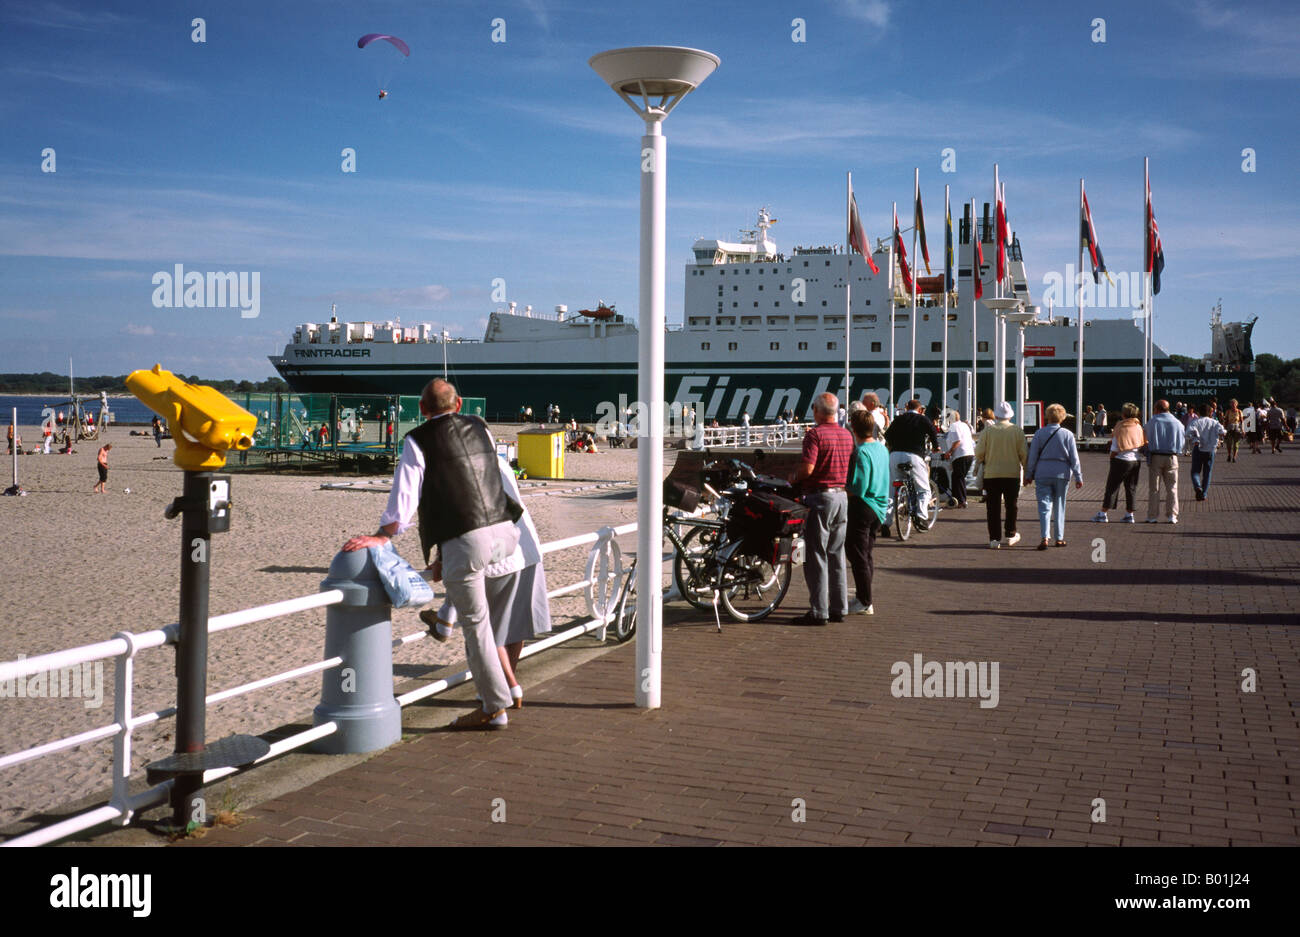 Sept 14, 2003 - Grimaldi owned ferry Finntrader leaves the German port of Travemünde headed for Malmö - Stock Image